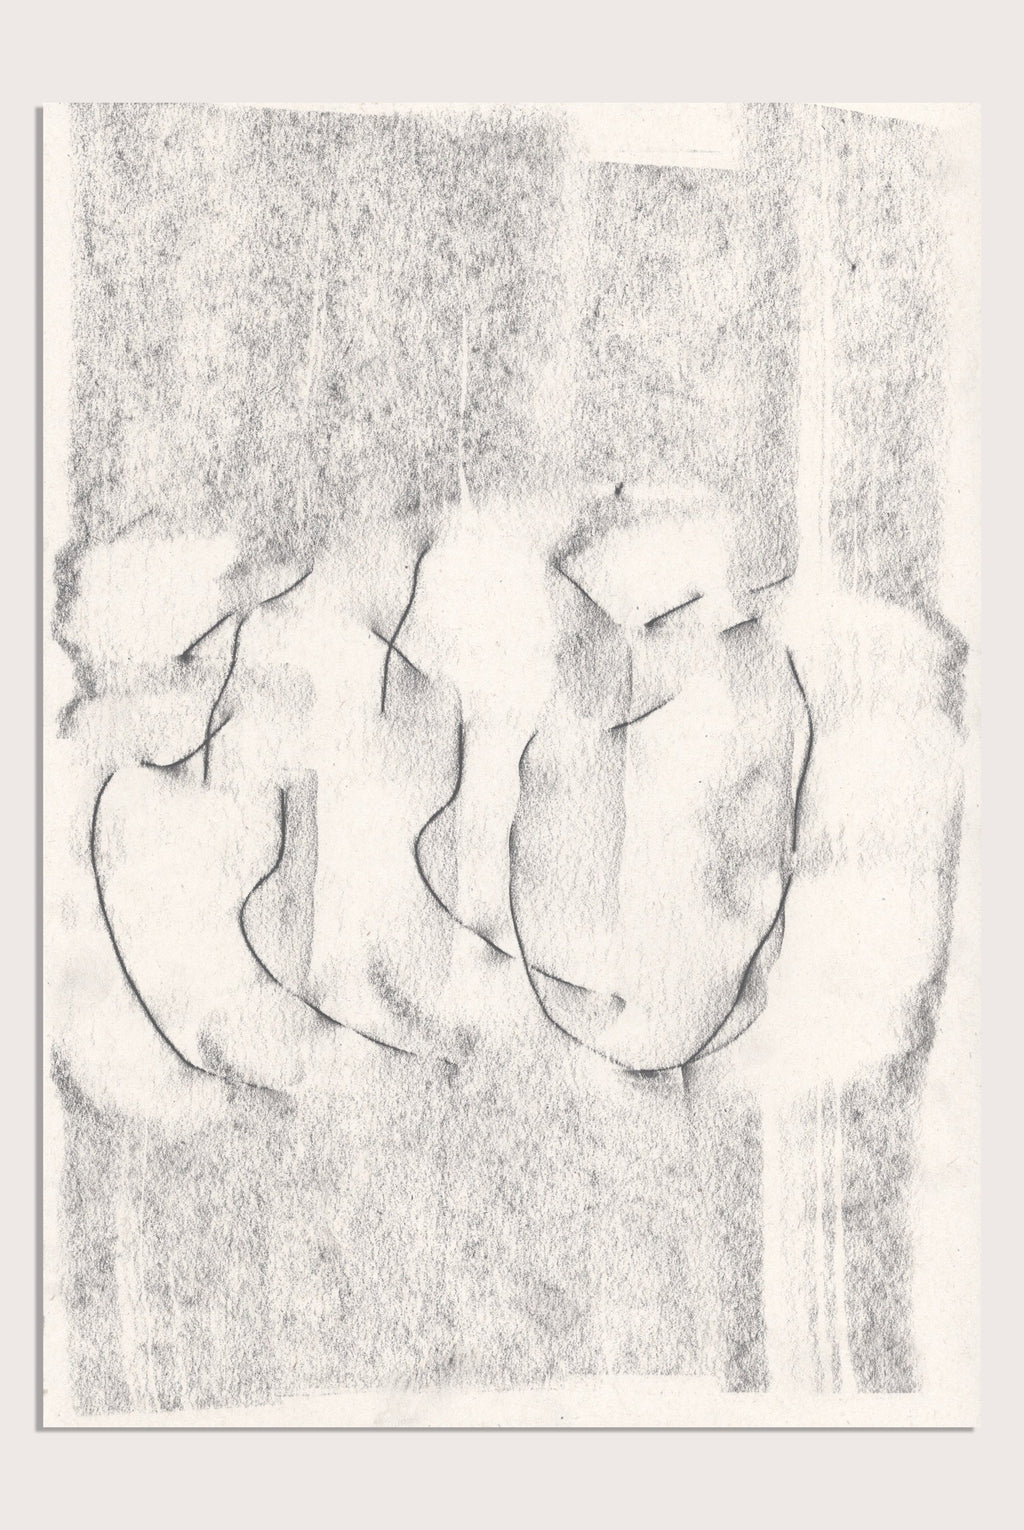 'Fleeting II', an abstract drawing by contemporary, woman artist Kayleigh Harris